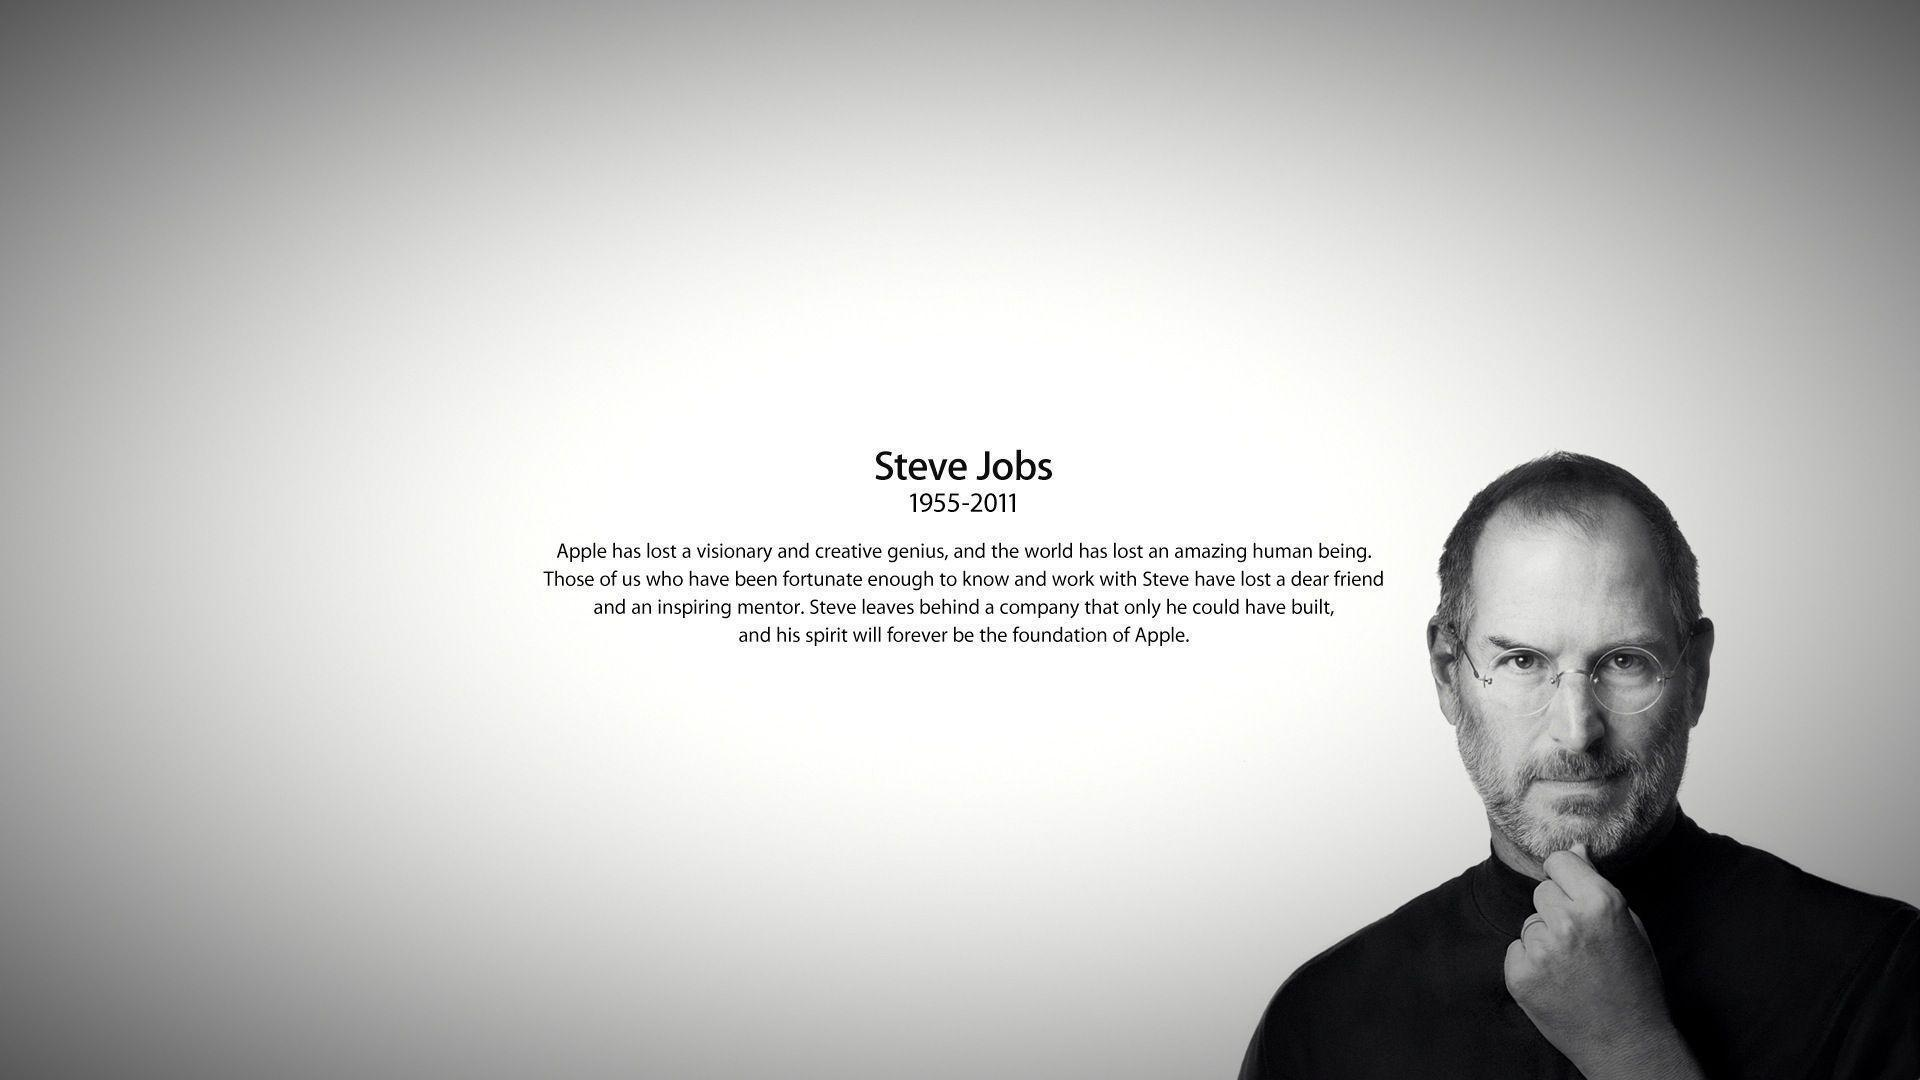 Steve Jobs Quotes Your Time Is Limited Wallpaper Steve Jobs Wallpapers Wallpaper Cave